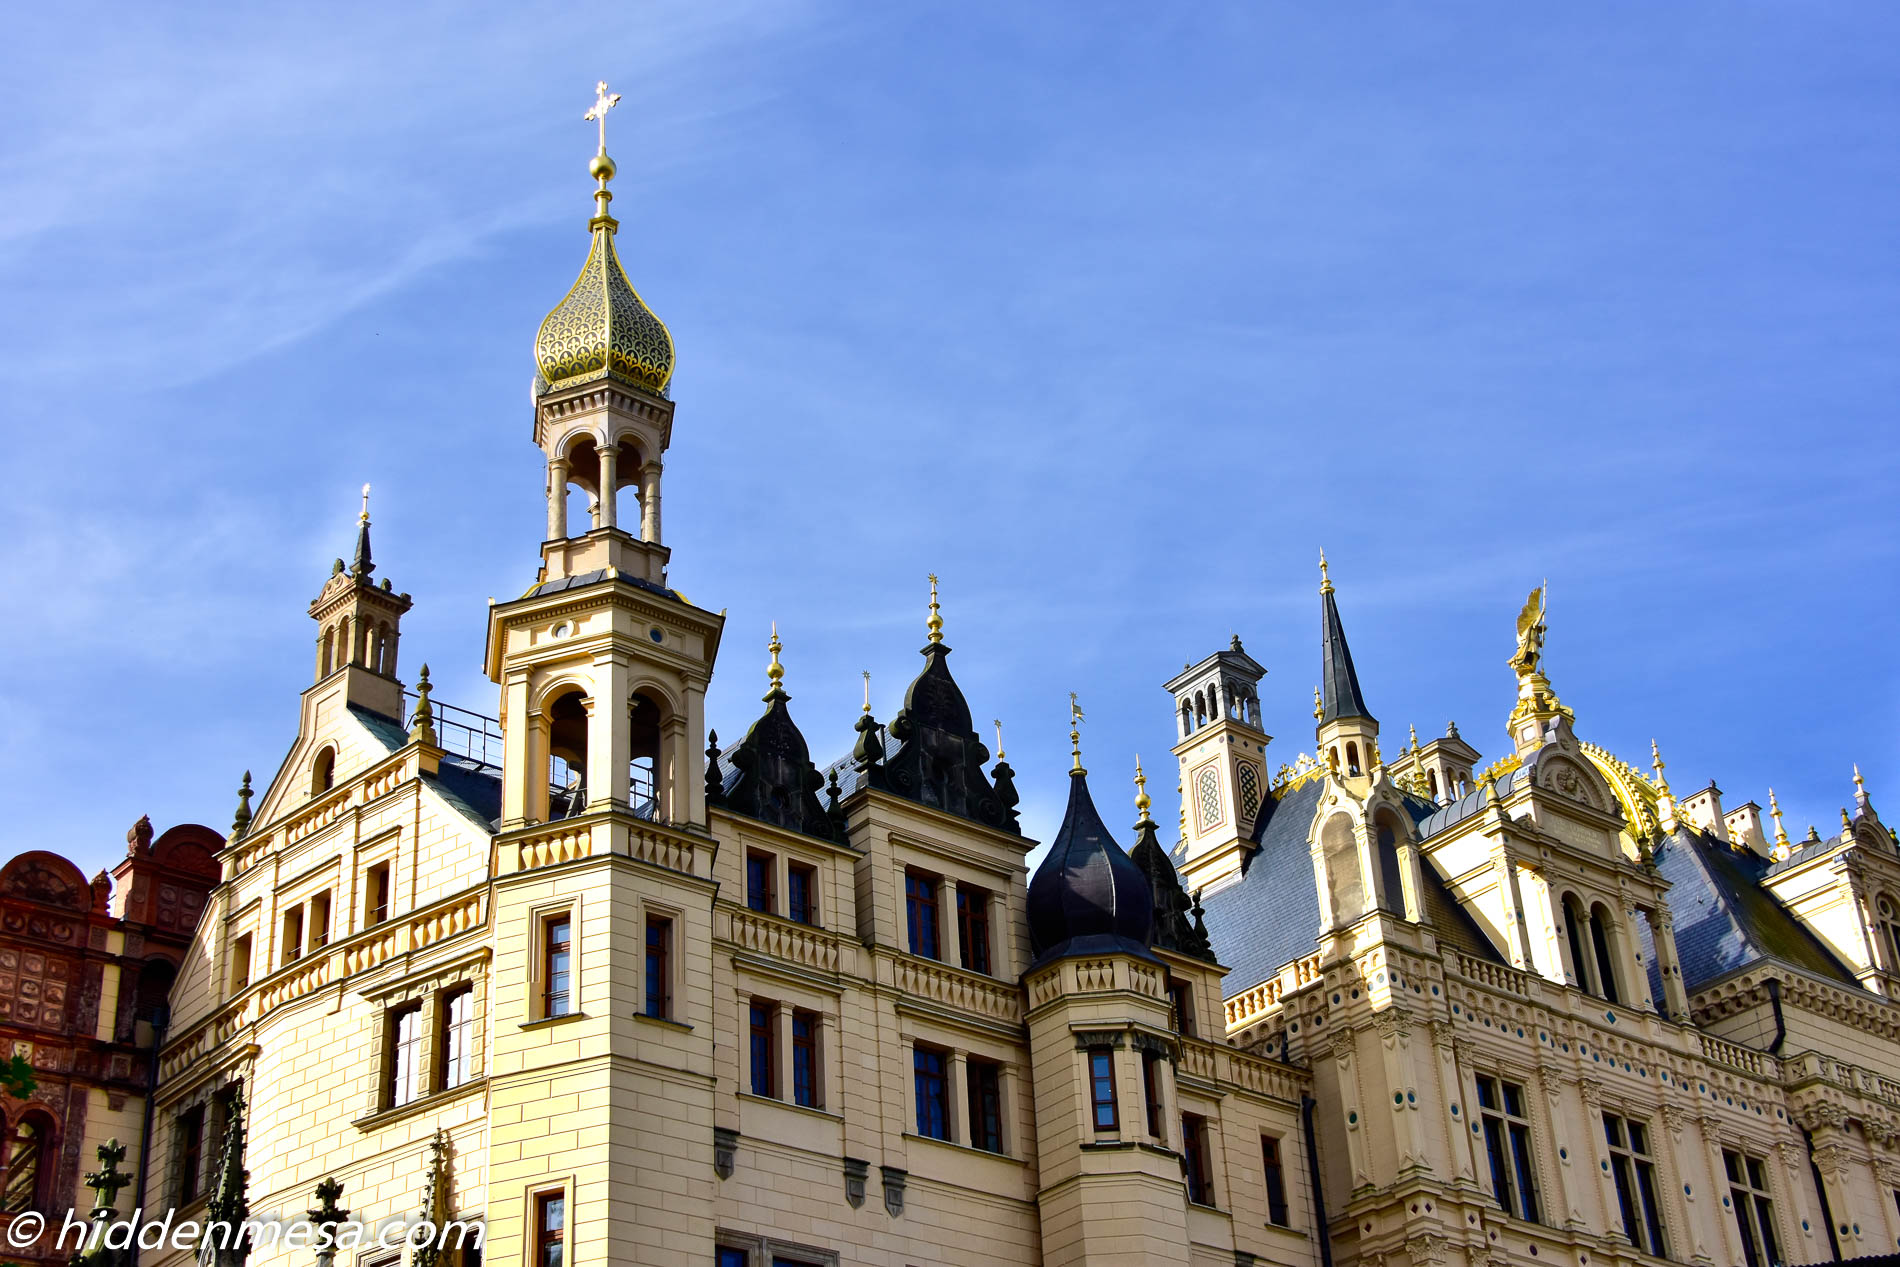 Roof line of Schwerin Palace.